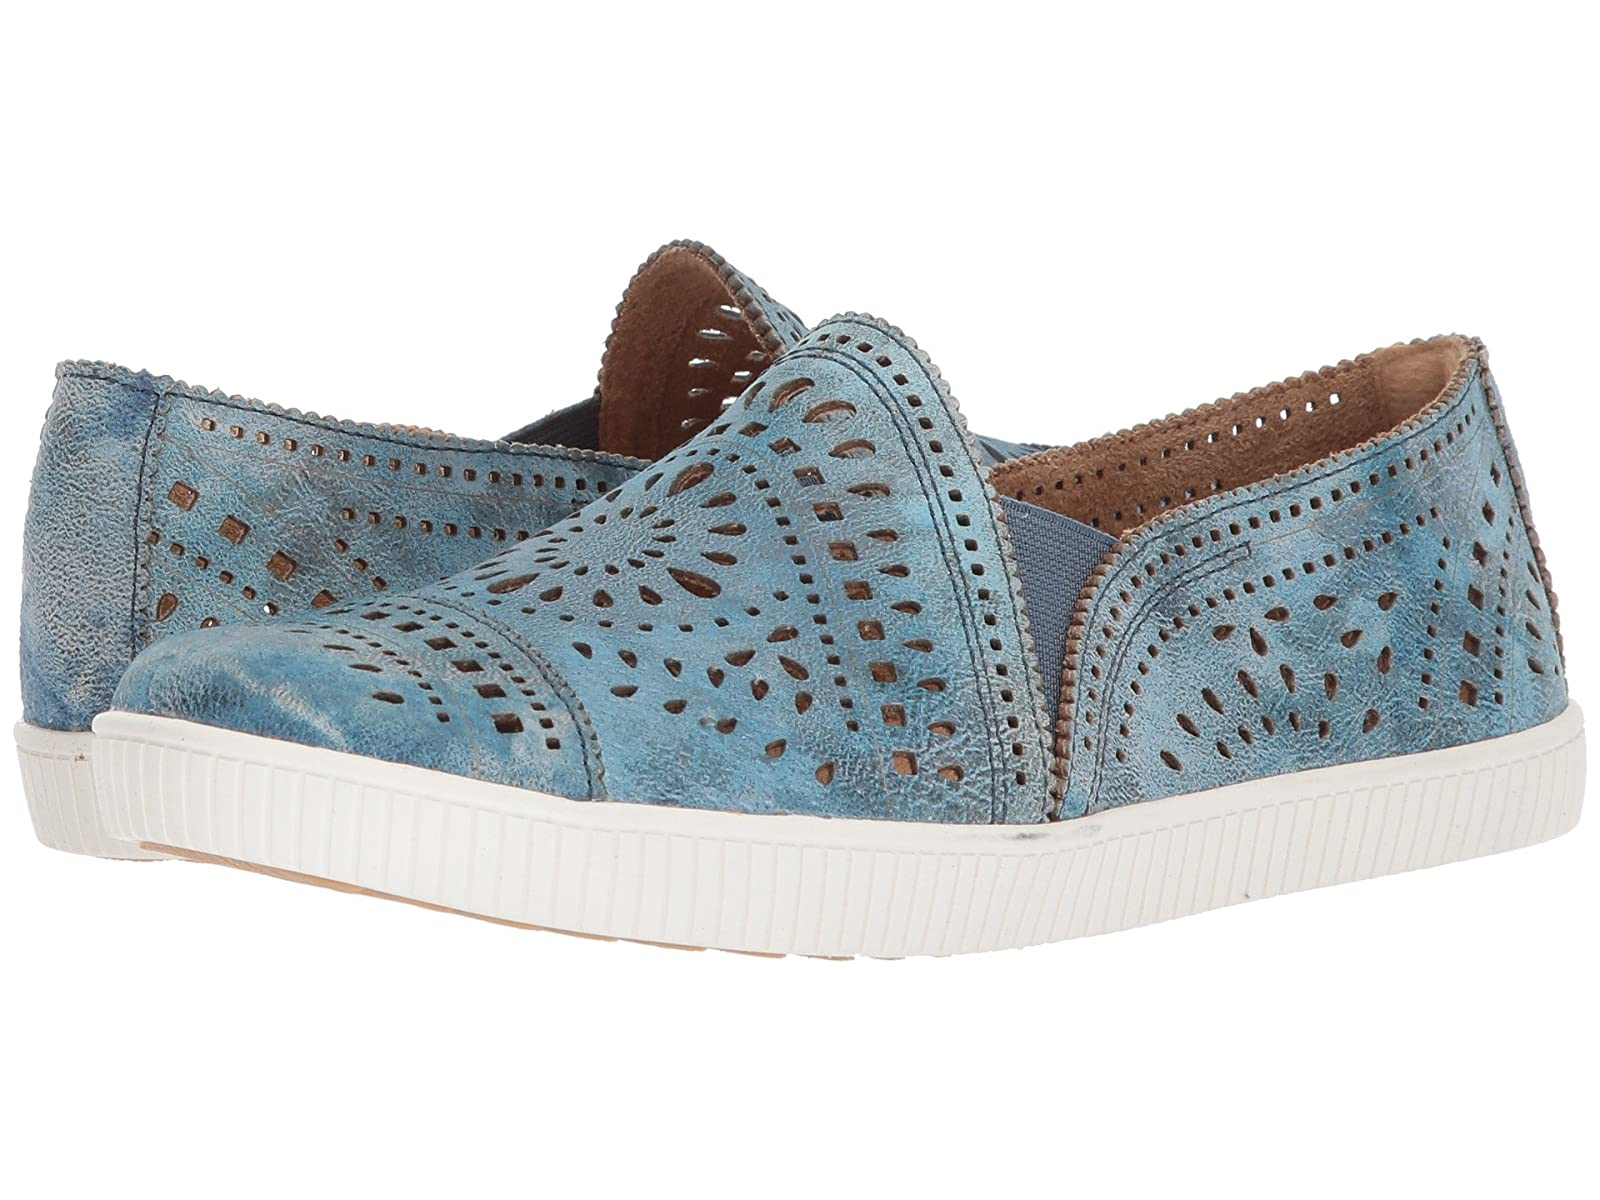 Earth TayberryCheap and distinctive eye-catching shoes